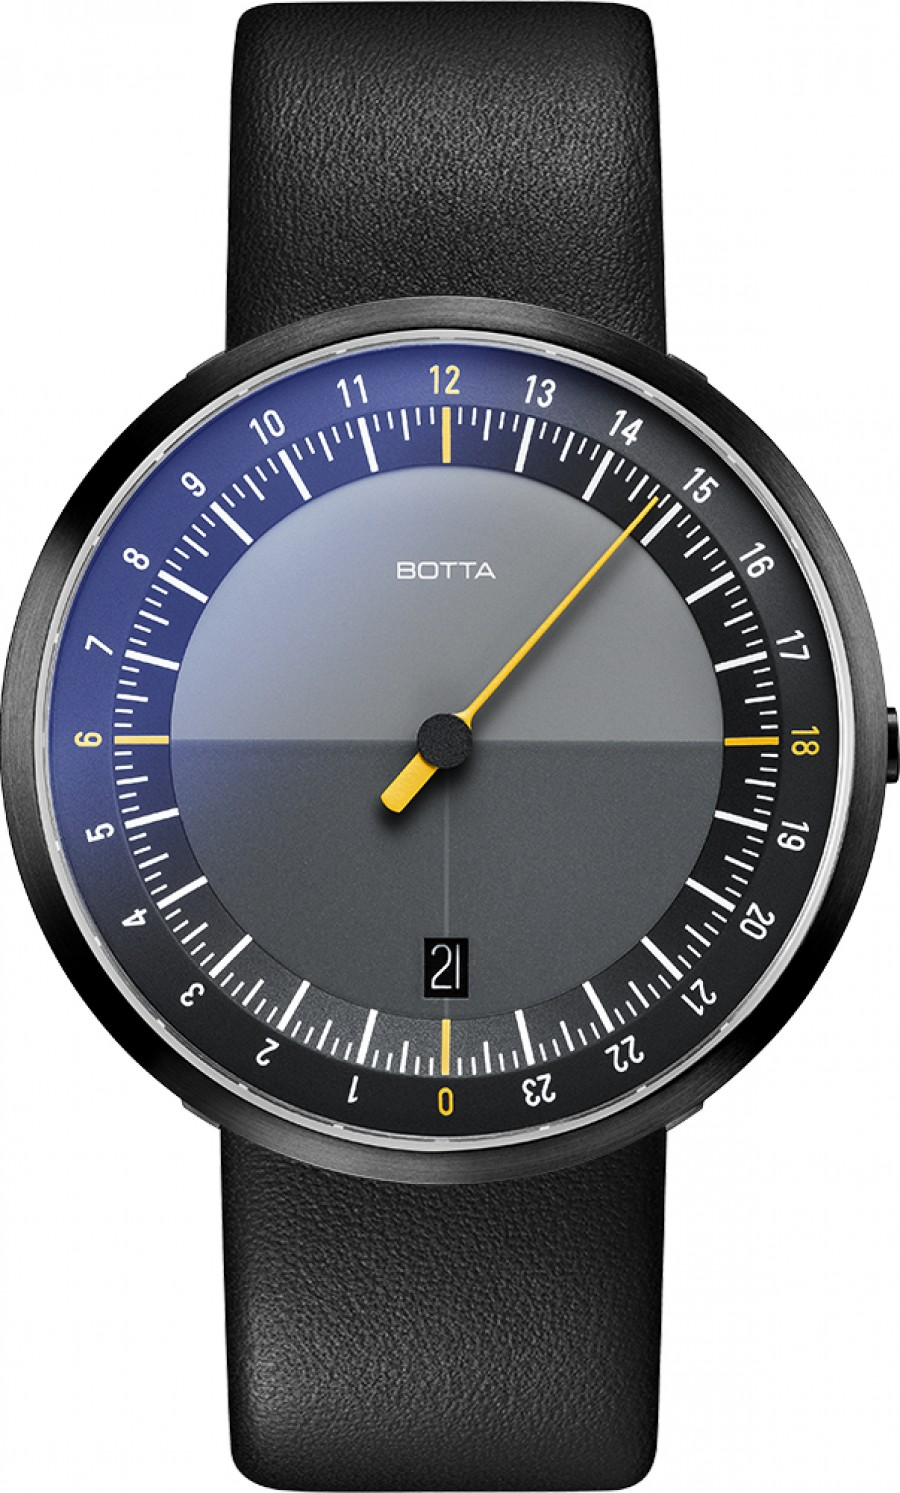 Botta Design uno24 229010be quartz 40mm